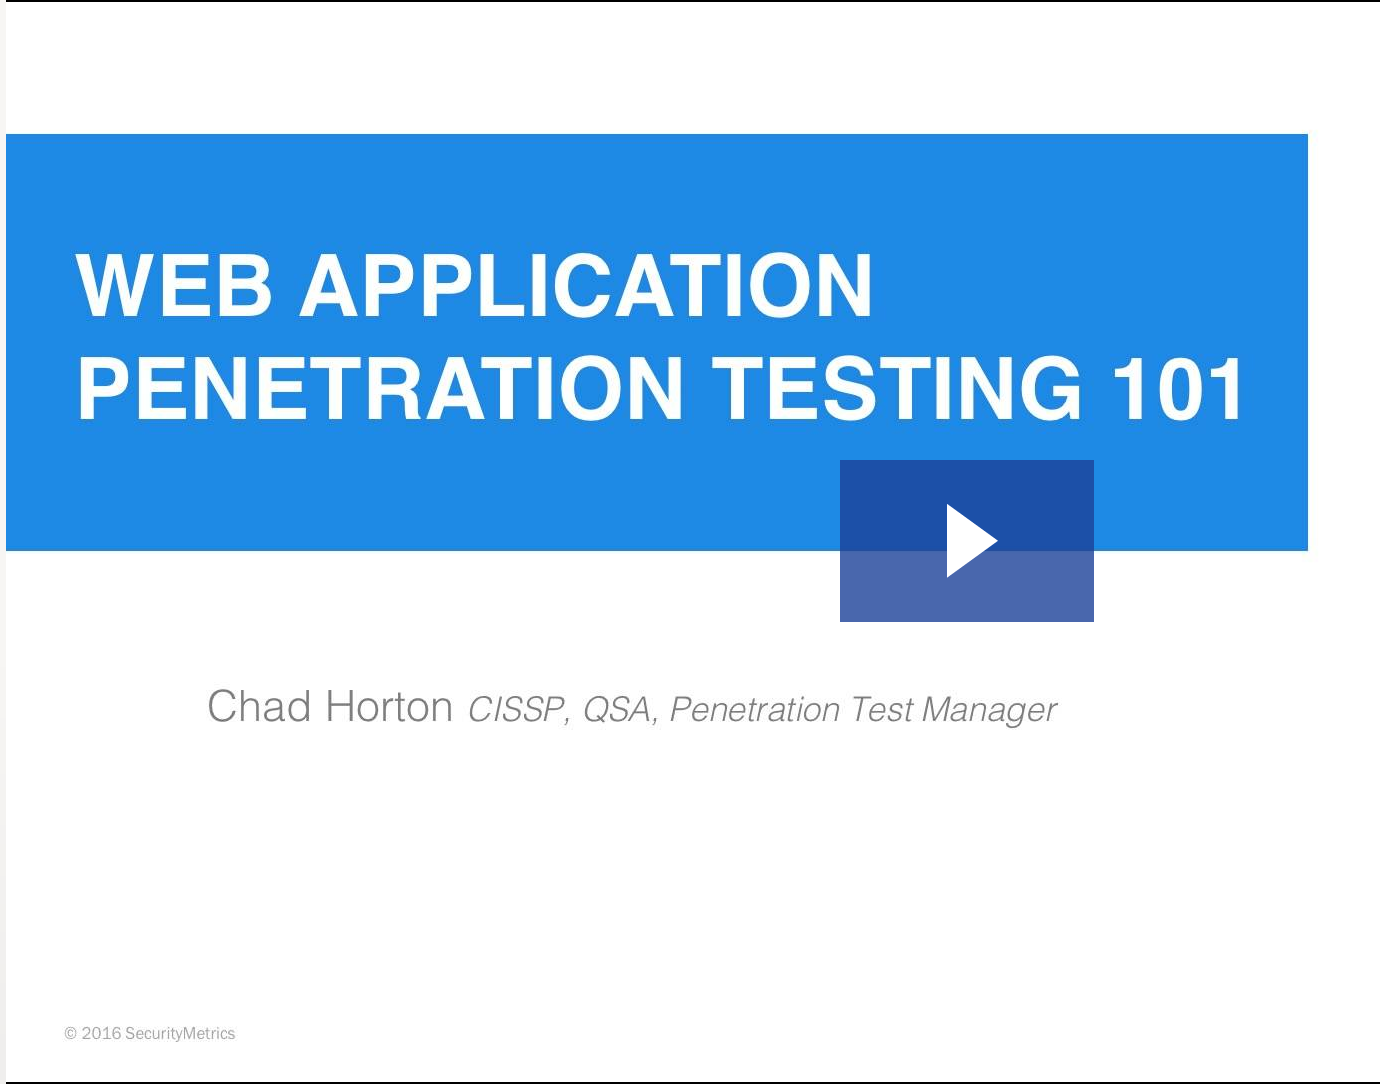 Web Application Penetration Testing 101